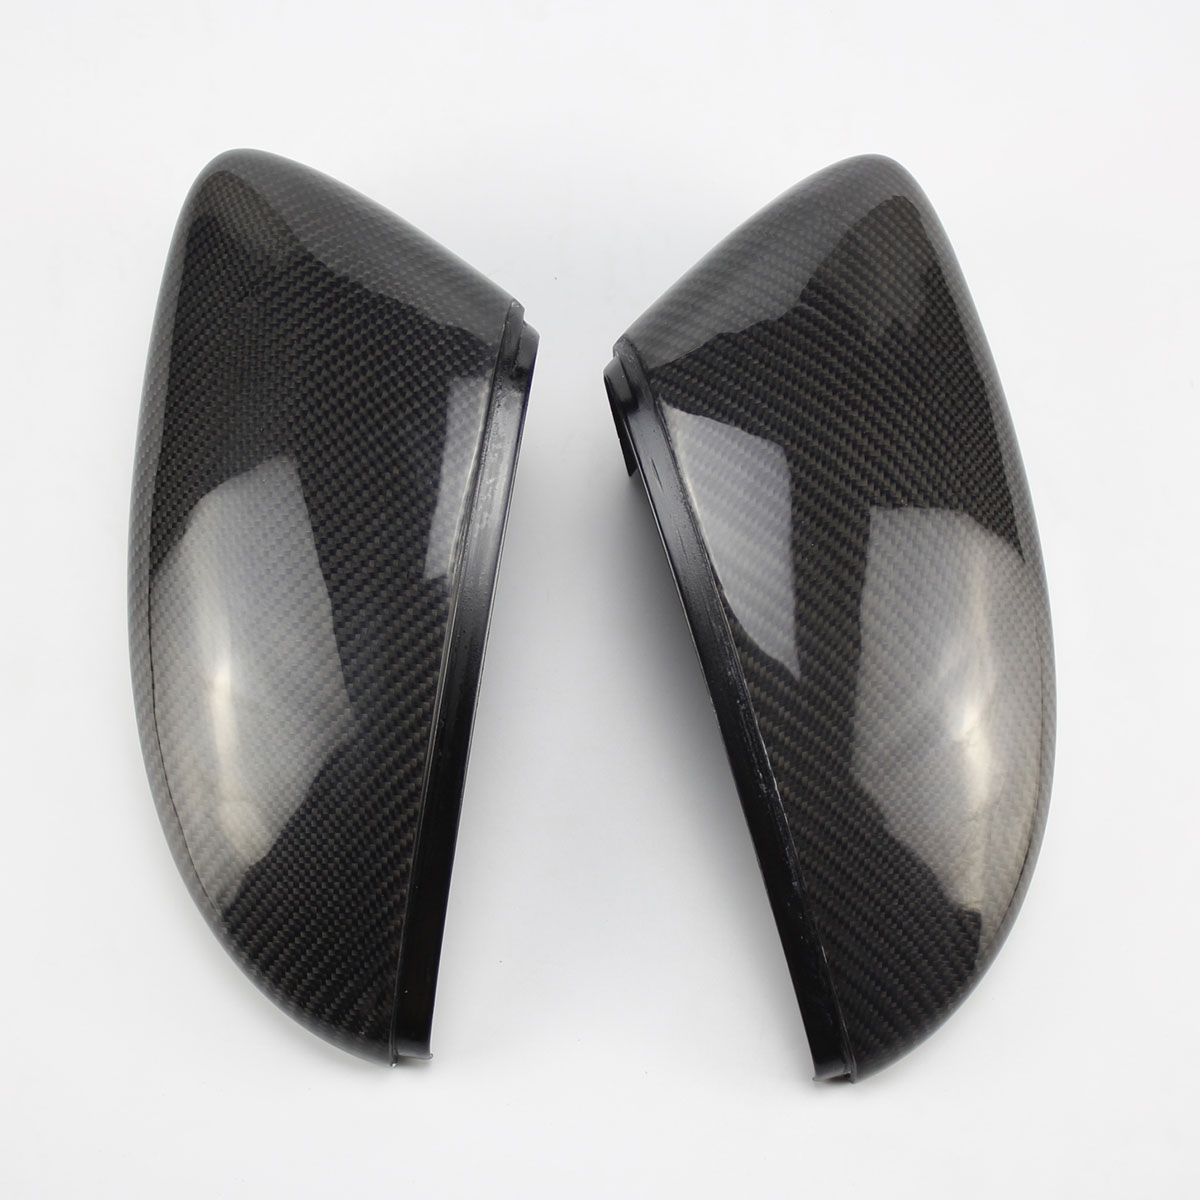 1:1 Pair Replace Cap Clasp Carbon Fiber Side Wing Cap Mirror Cover for VW Passat CC B7 abs mirror cover chrome matt painted cap side mirror housings for volkswagen jetta golf 5 passat b6 ct